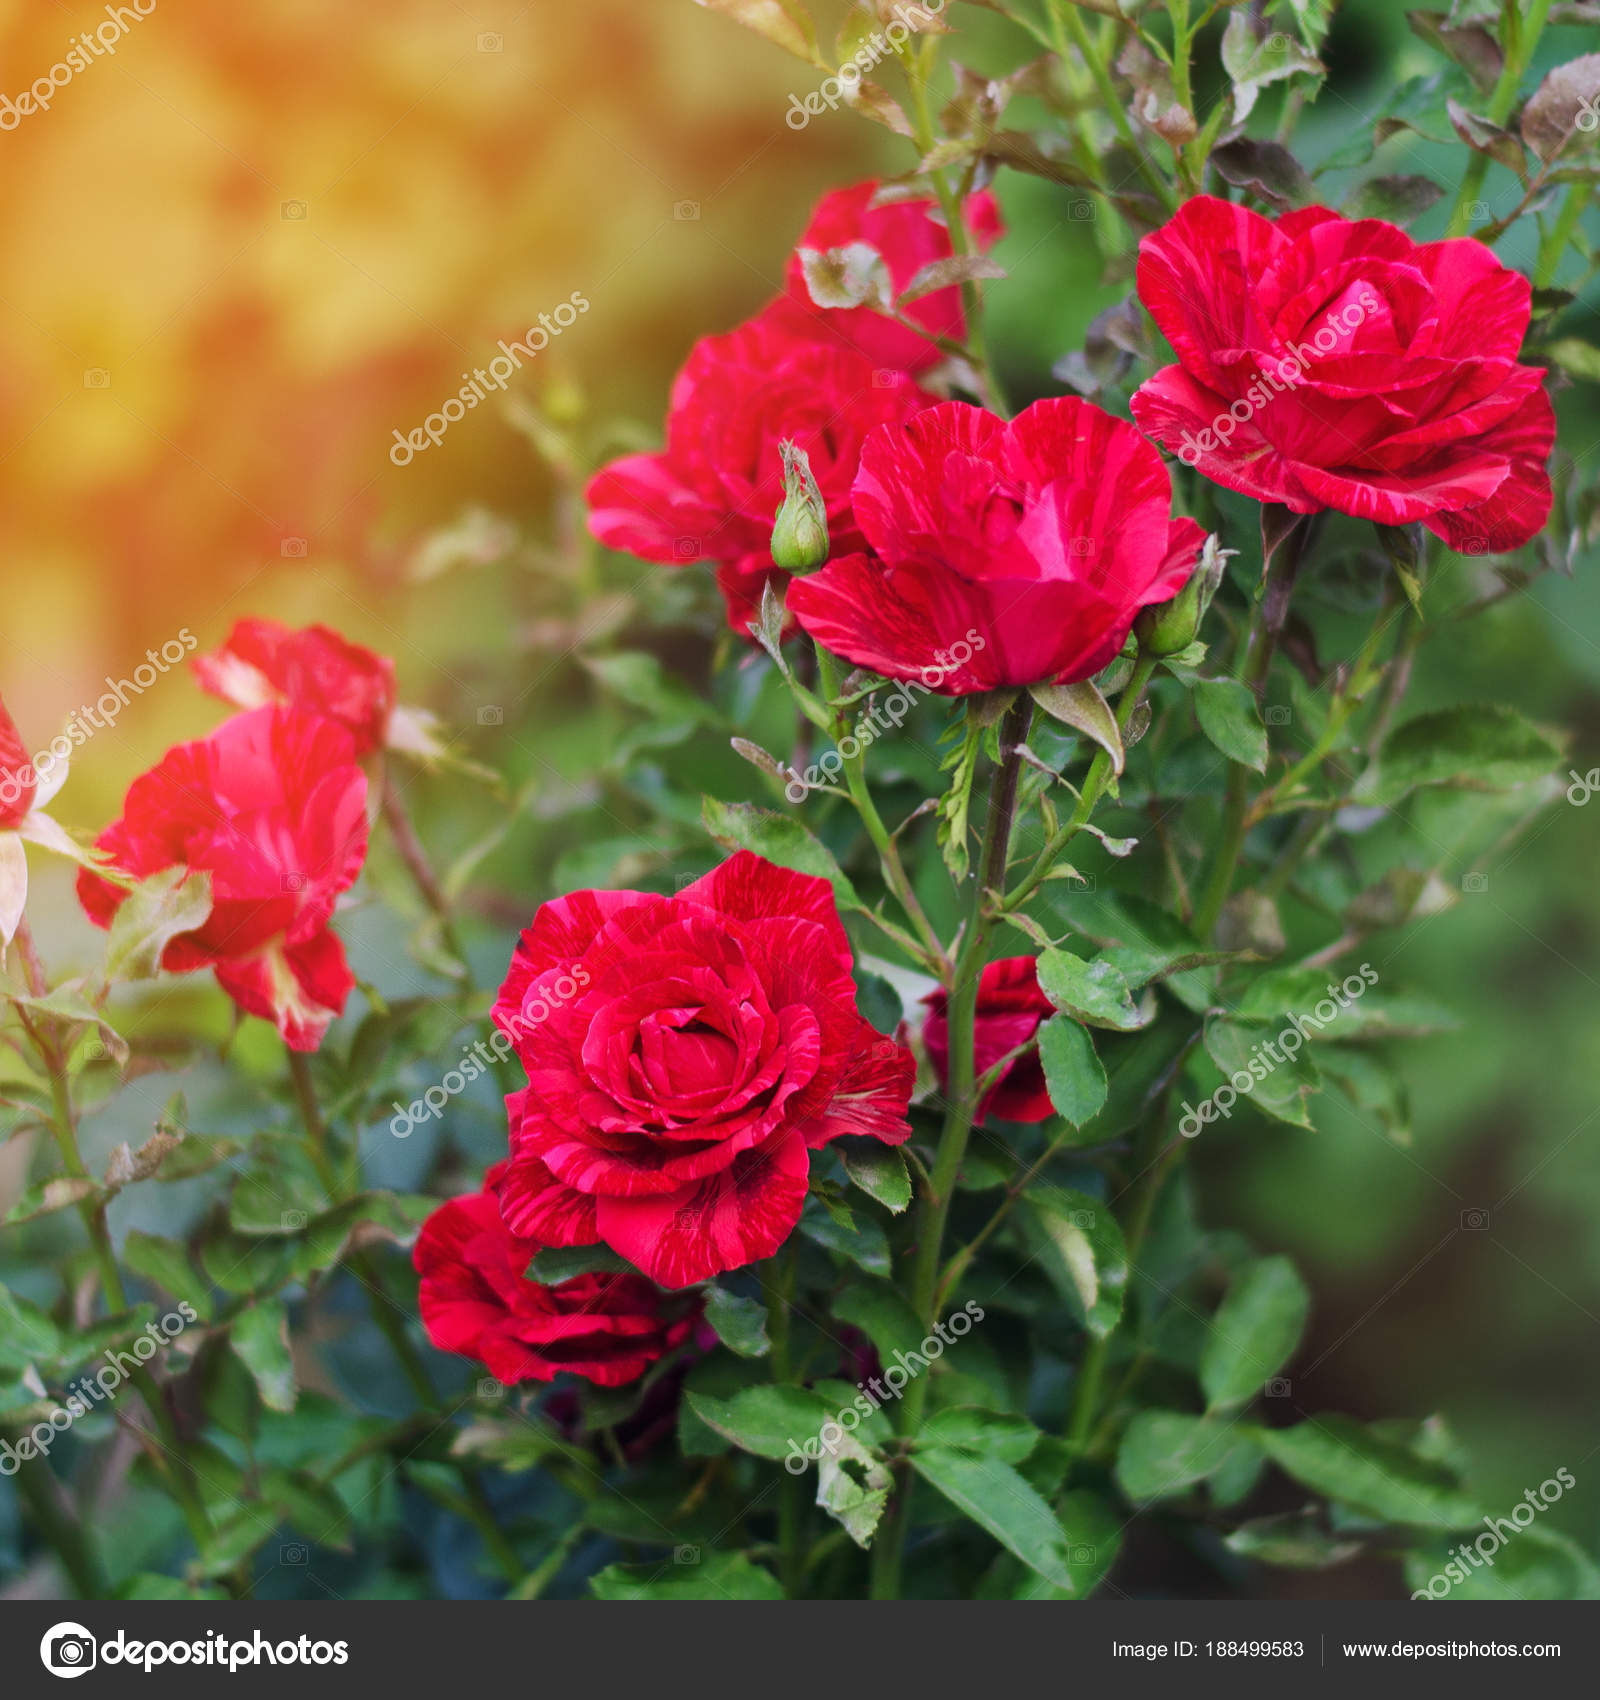 Wallpapers Rose Garden Wallpaper Beautiful Red Roses In The